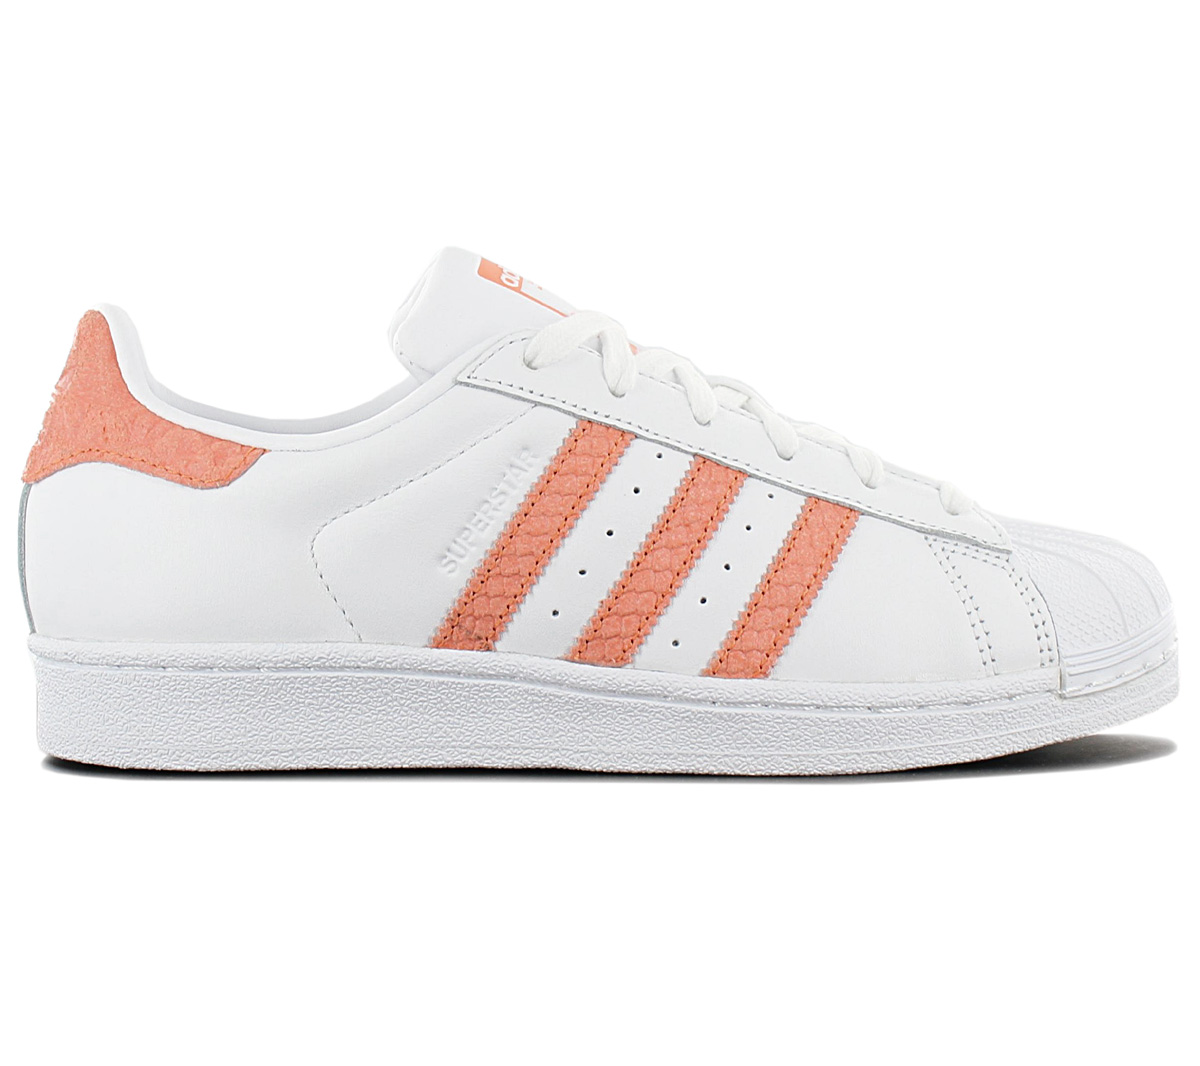 Details about Adidas Originals Superstar W Women's Sneaker CG5462 White Shoes Sneakers New